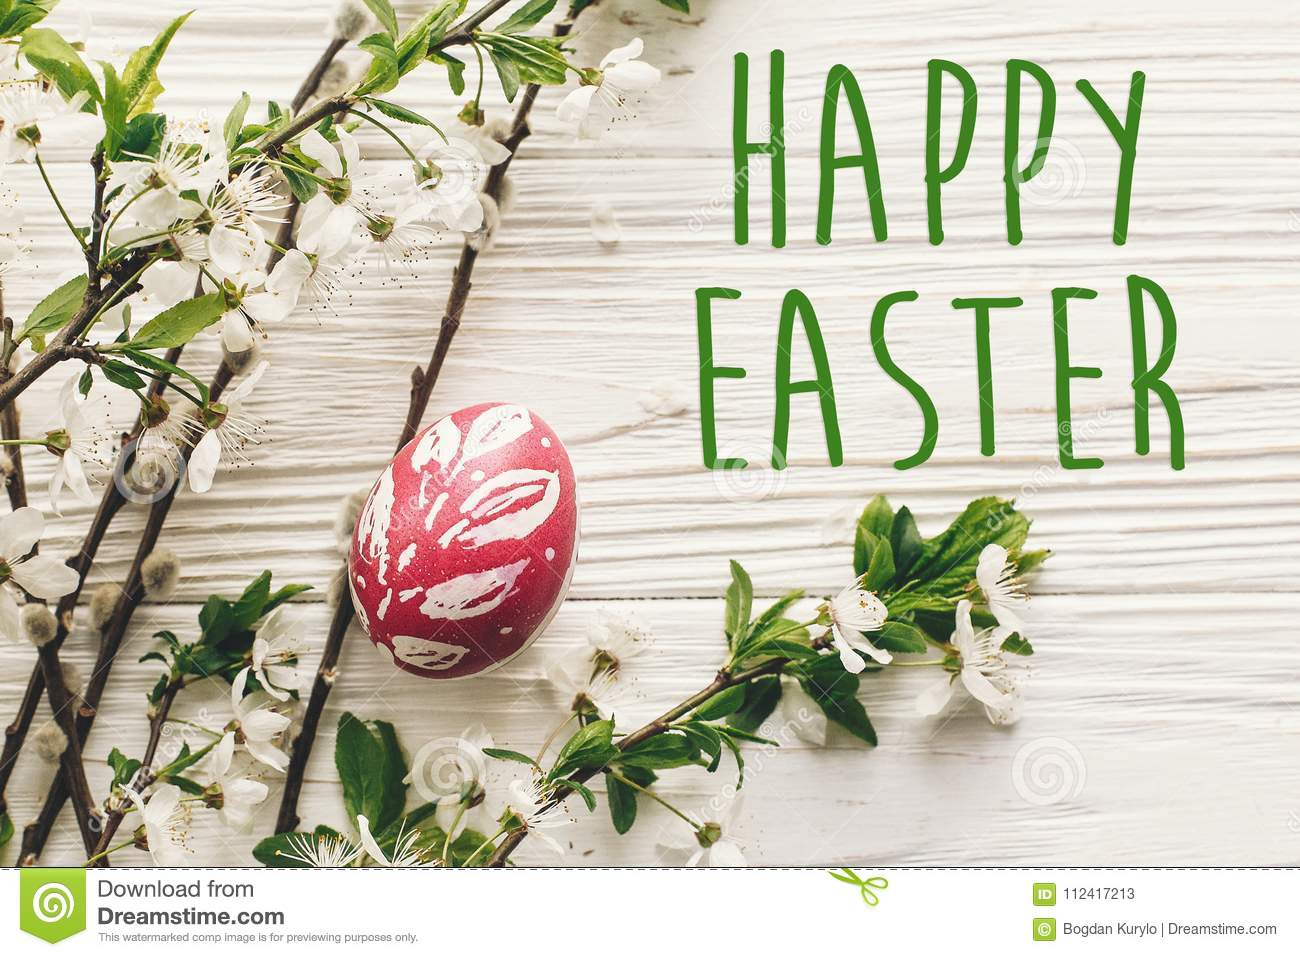 Happy Easter Text Seasons Greetings Card Stylish Easter Flat